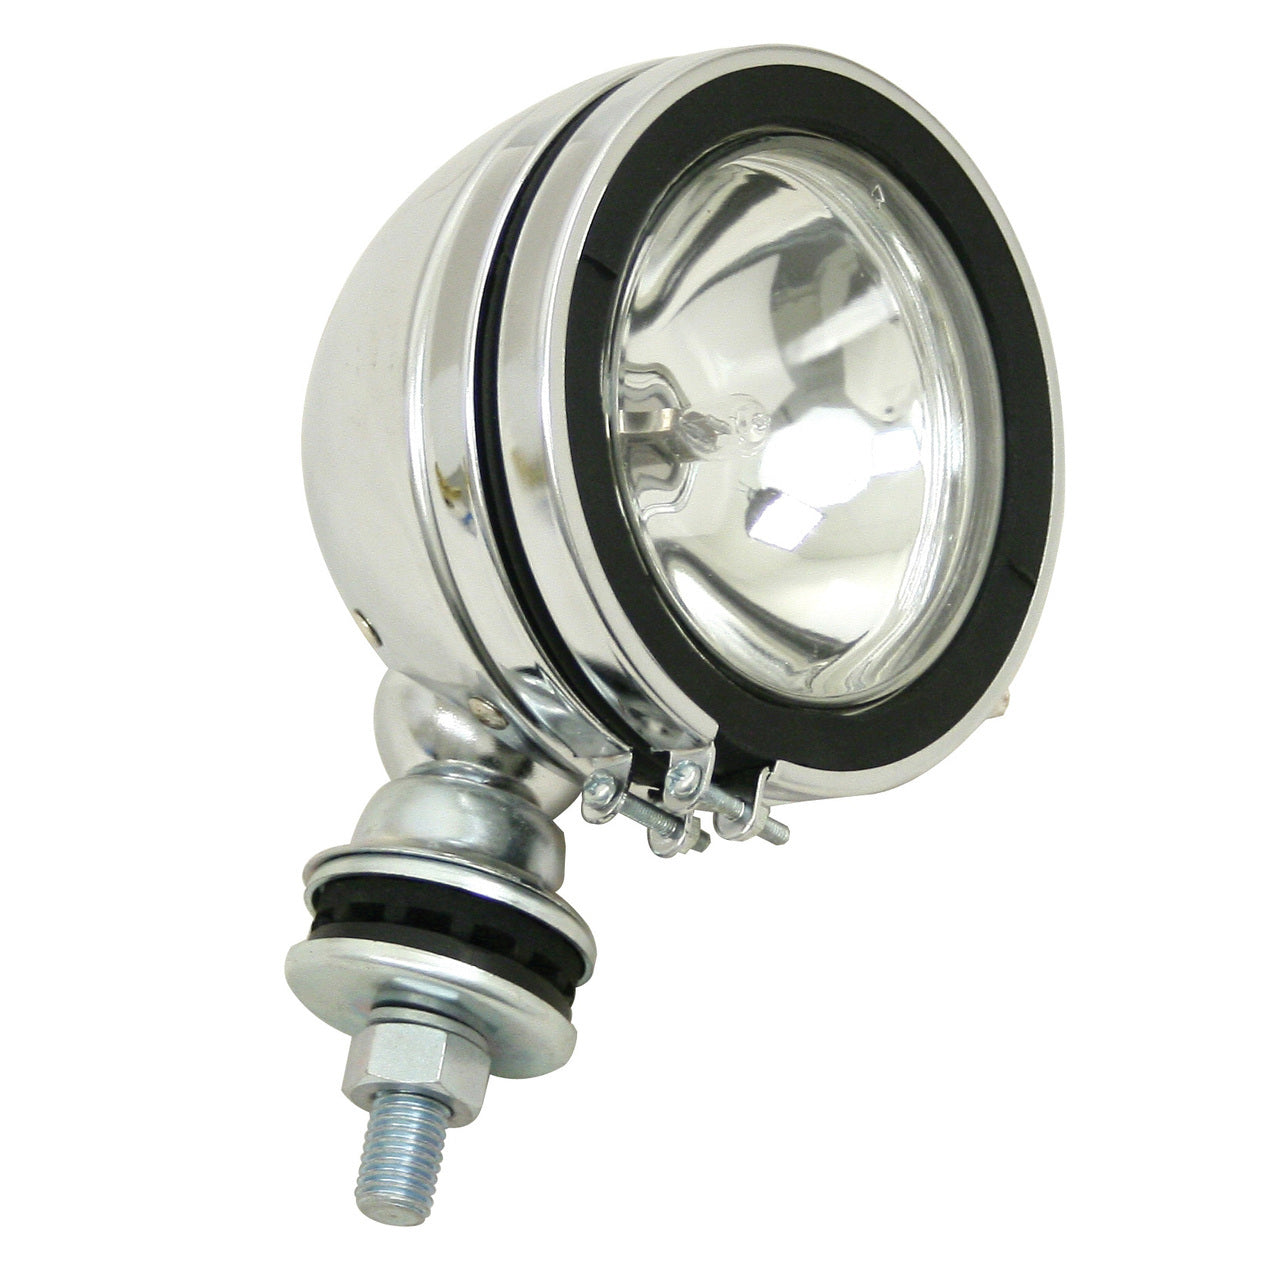 "CHROME 6"" ROUND OFF-ROAD LIGHT WITH MOUNTING POST - H3 100W"